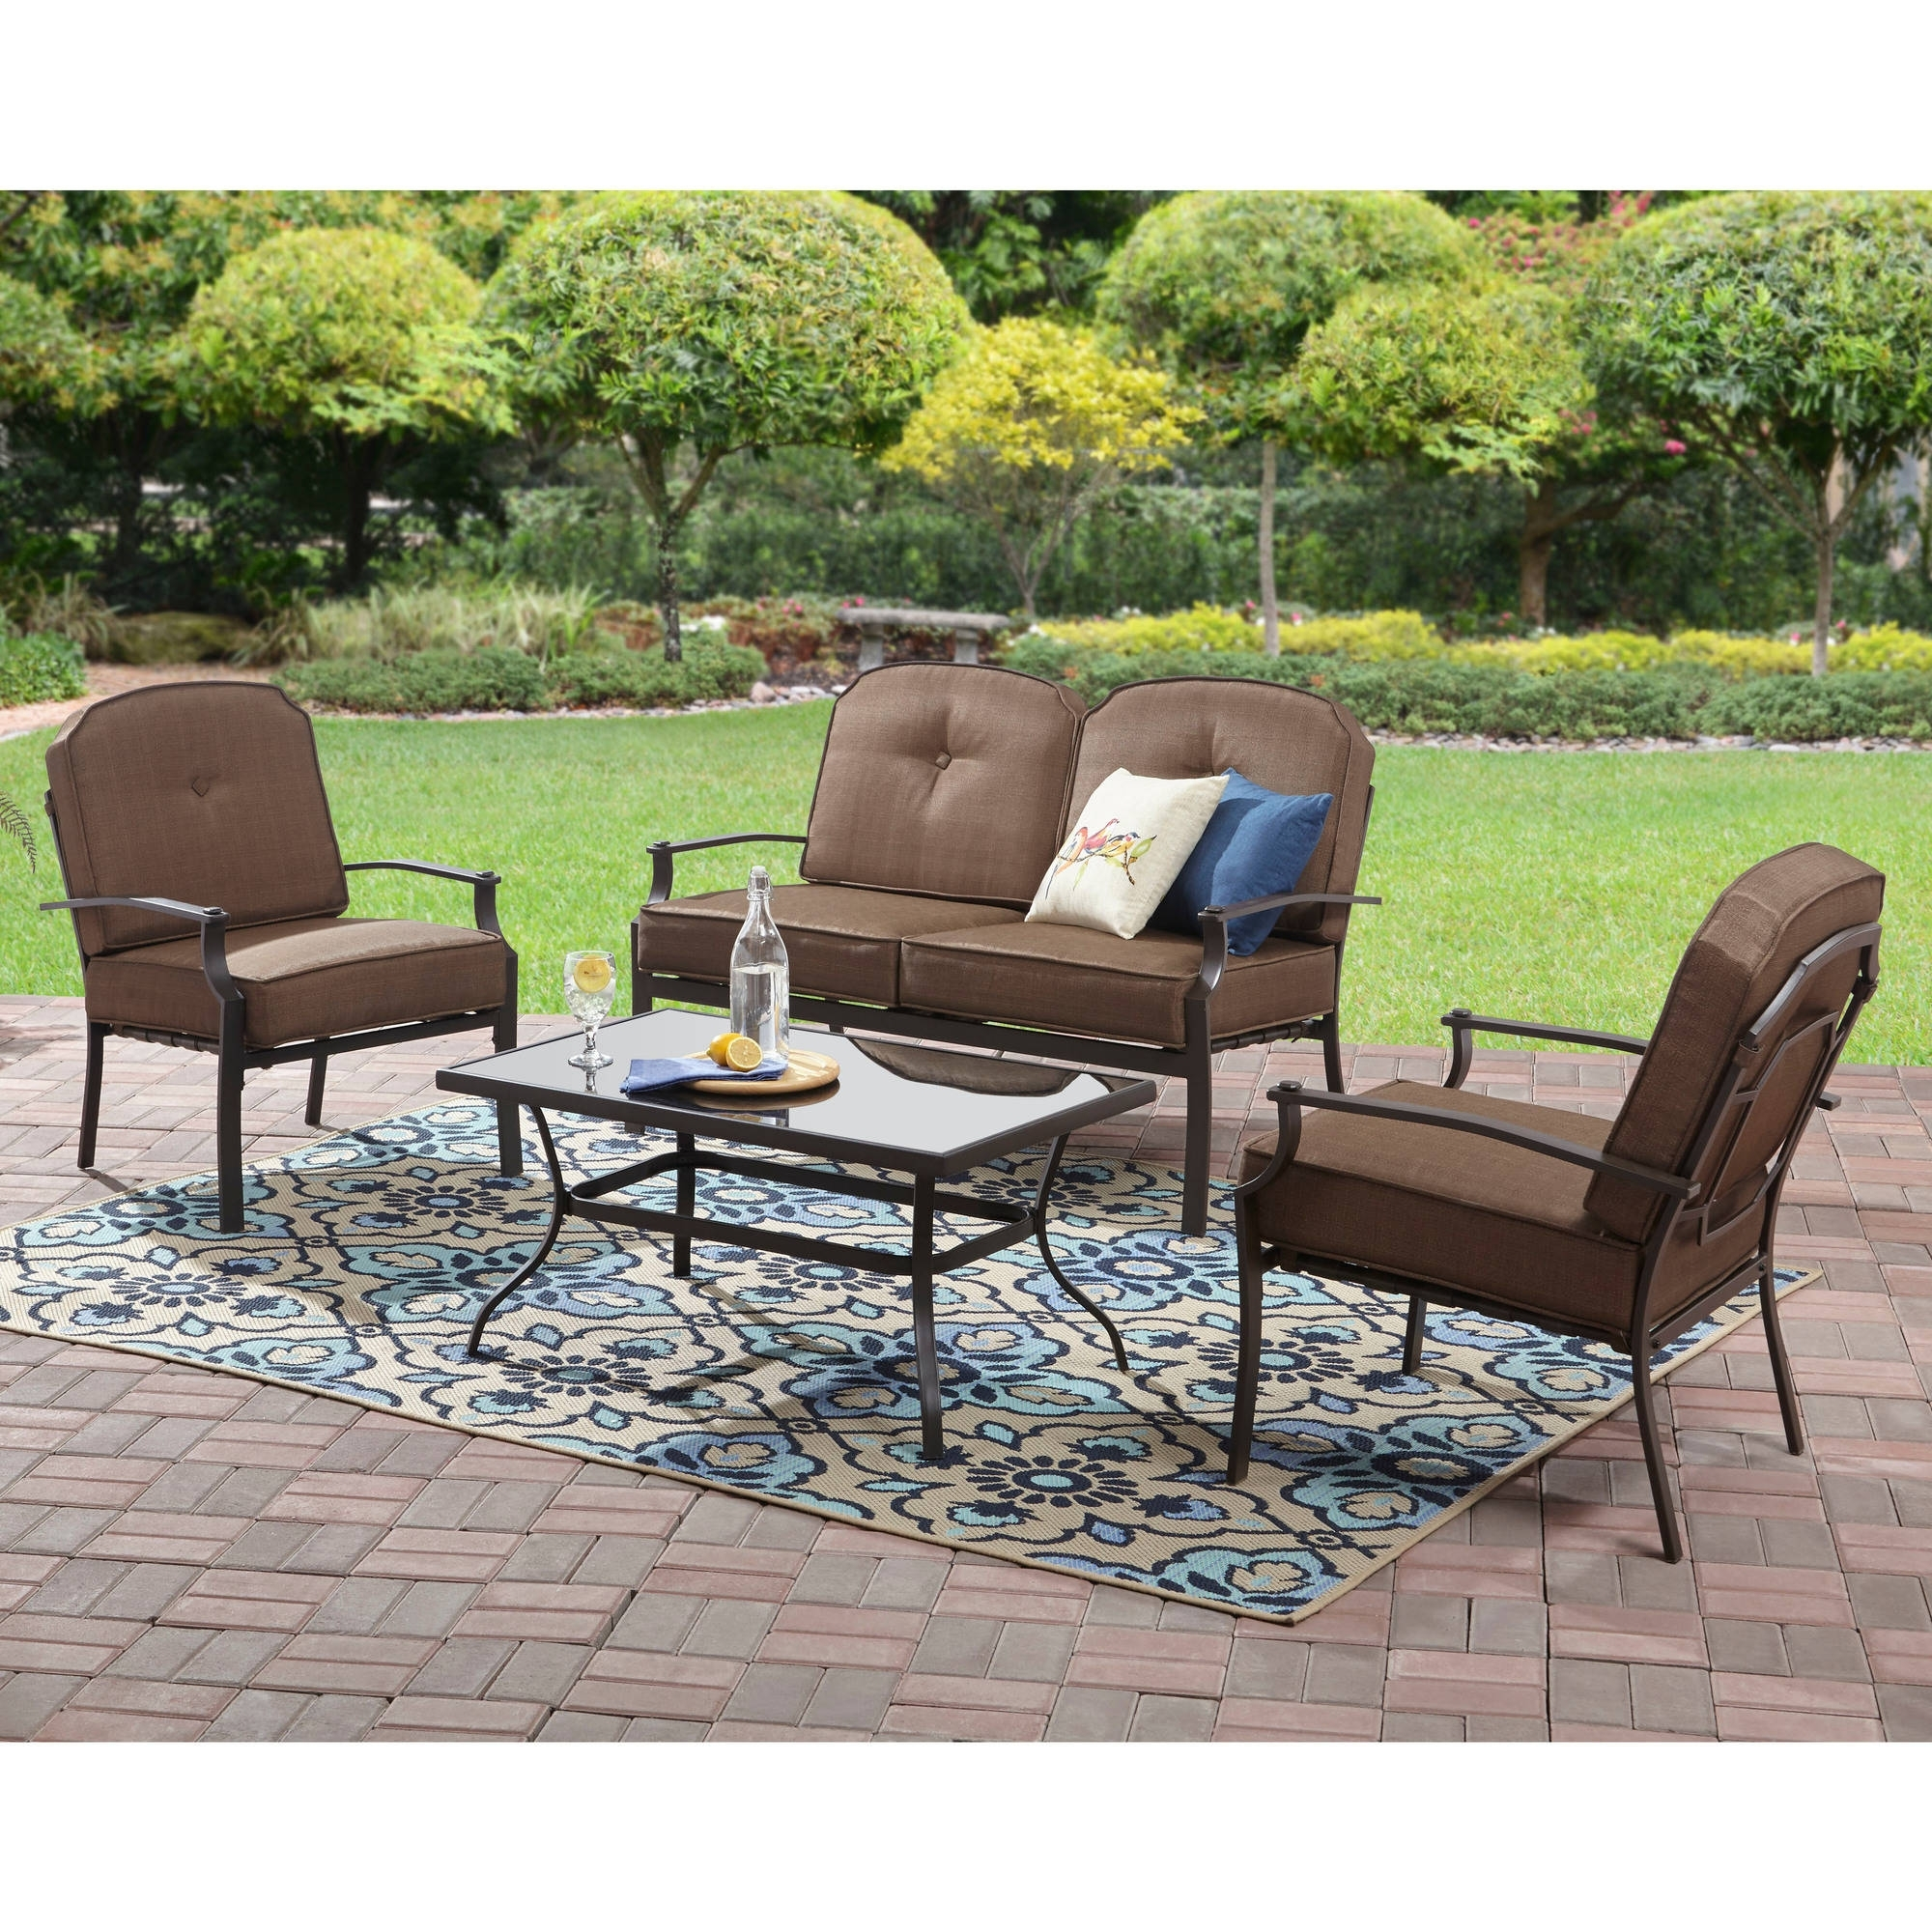 Most Recently Released Patio Conversation Sets Within Mainstays Spring Creek 5 Piece Patio Dining Set, Seats 4 – Walmart (View 5 of 15)